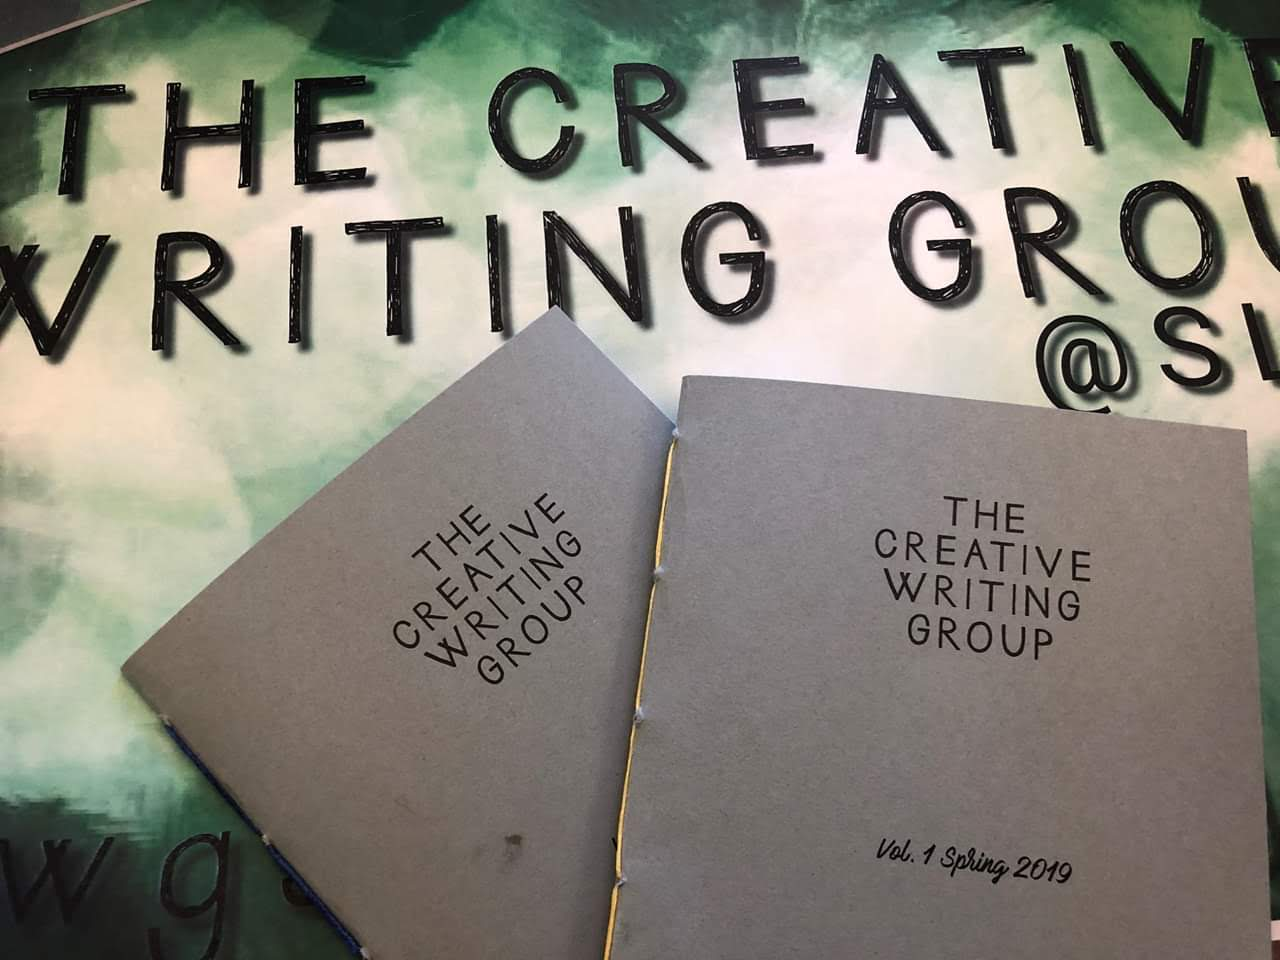 The Creative Writing Group poster and publications